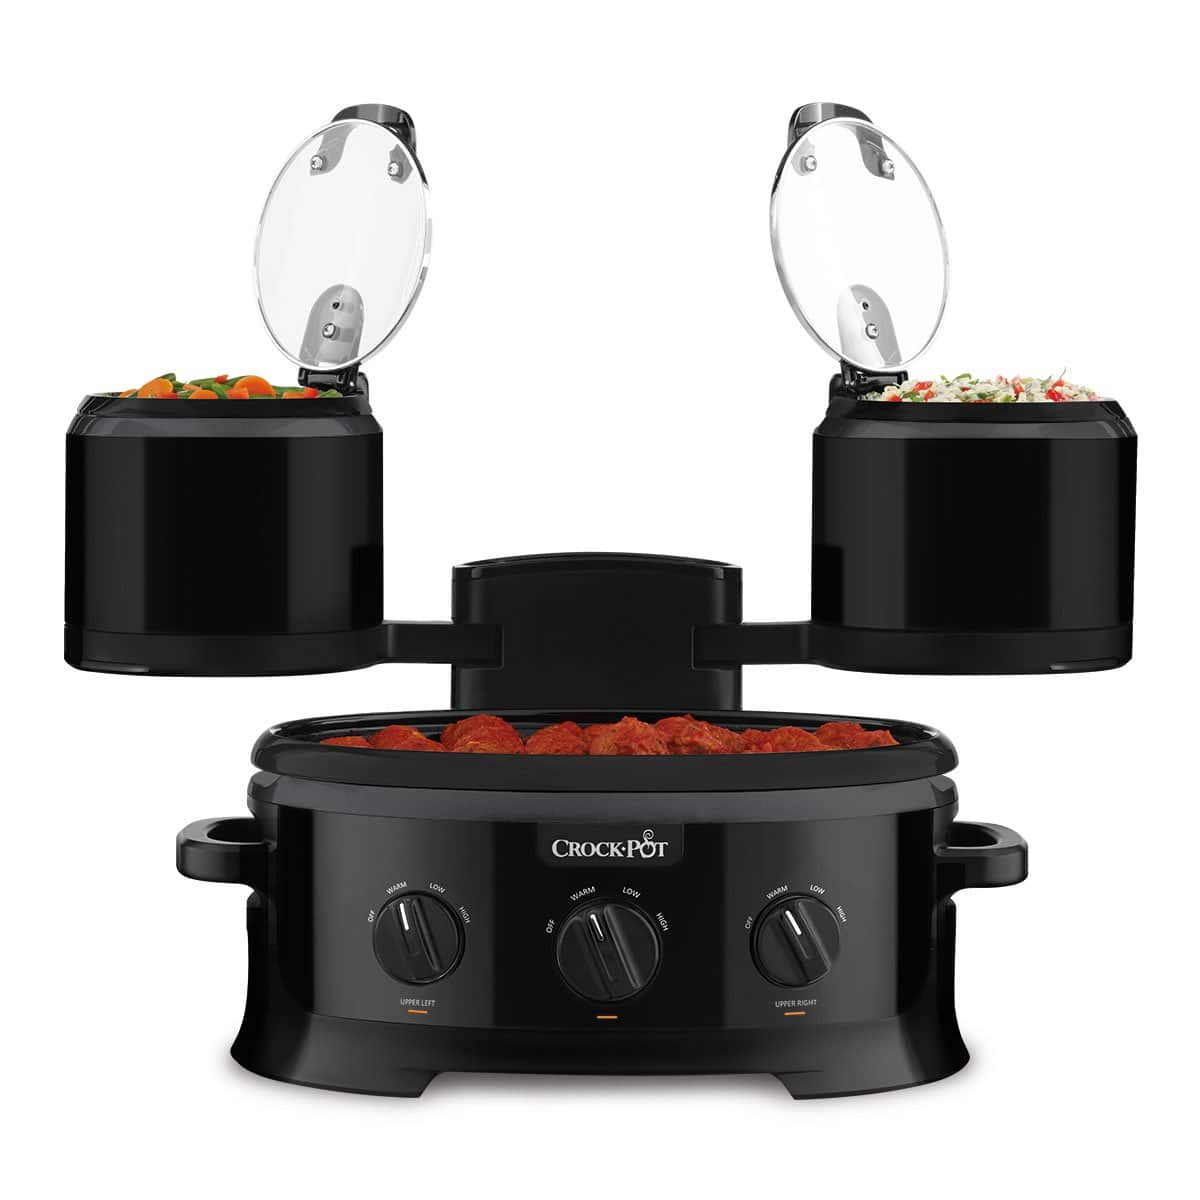 Crock-Pot Swing and Serve Slow Cooker - $55.99 Plus Free Shipping